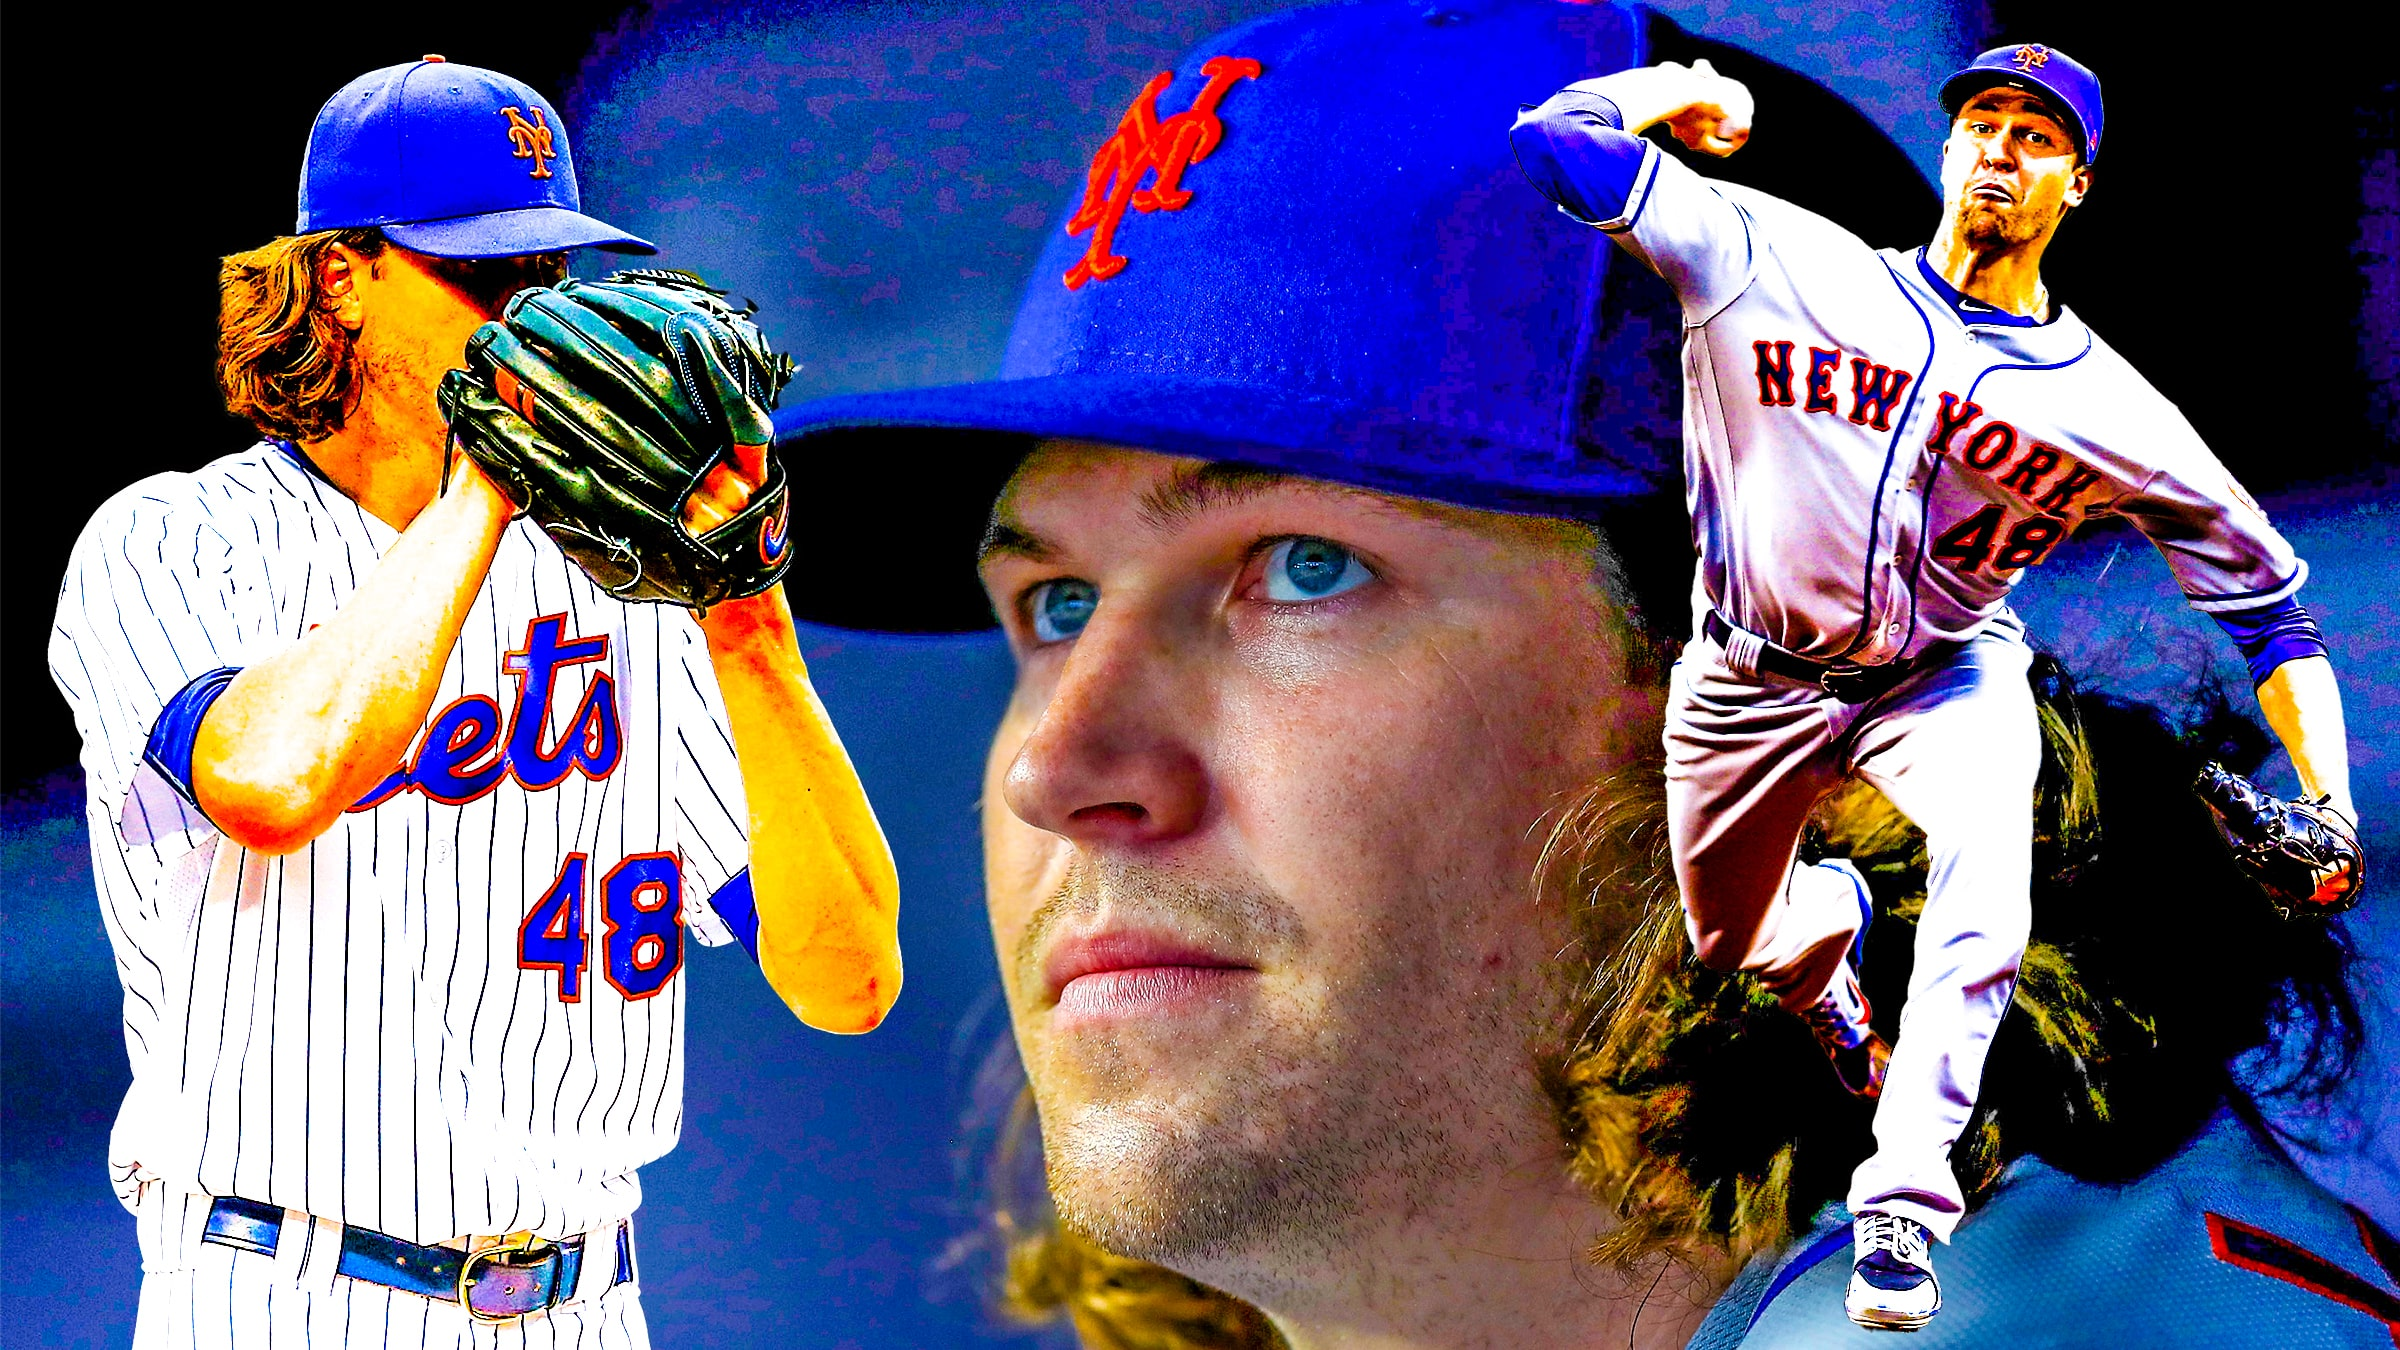 super popular 3b608 adc4f New York Mets video: Jacob deGrom presented with All-Star ...